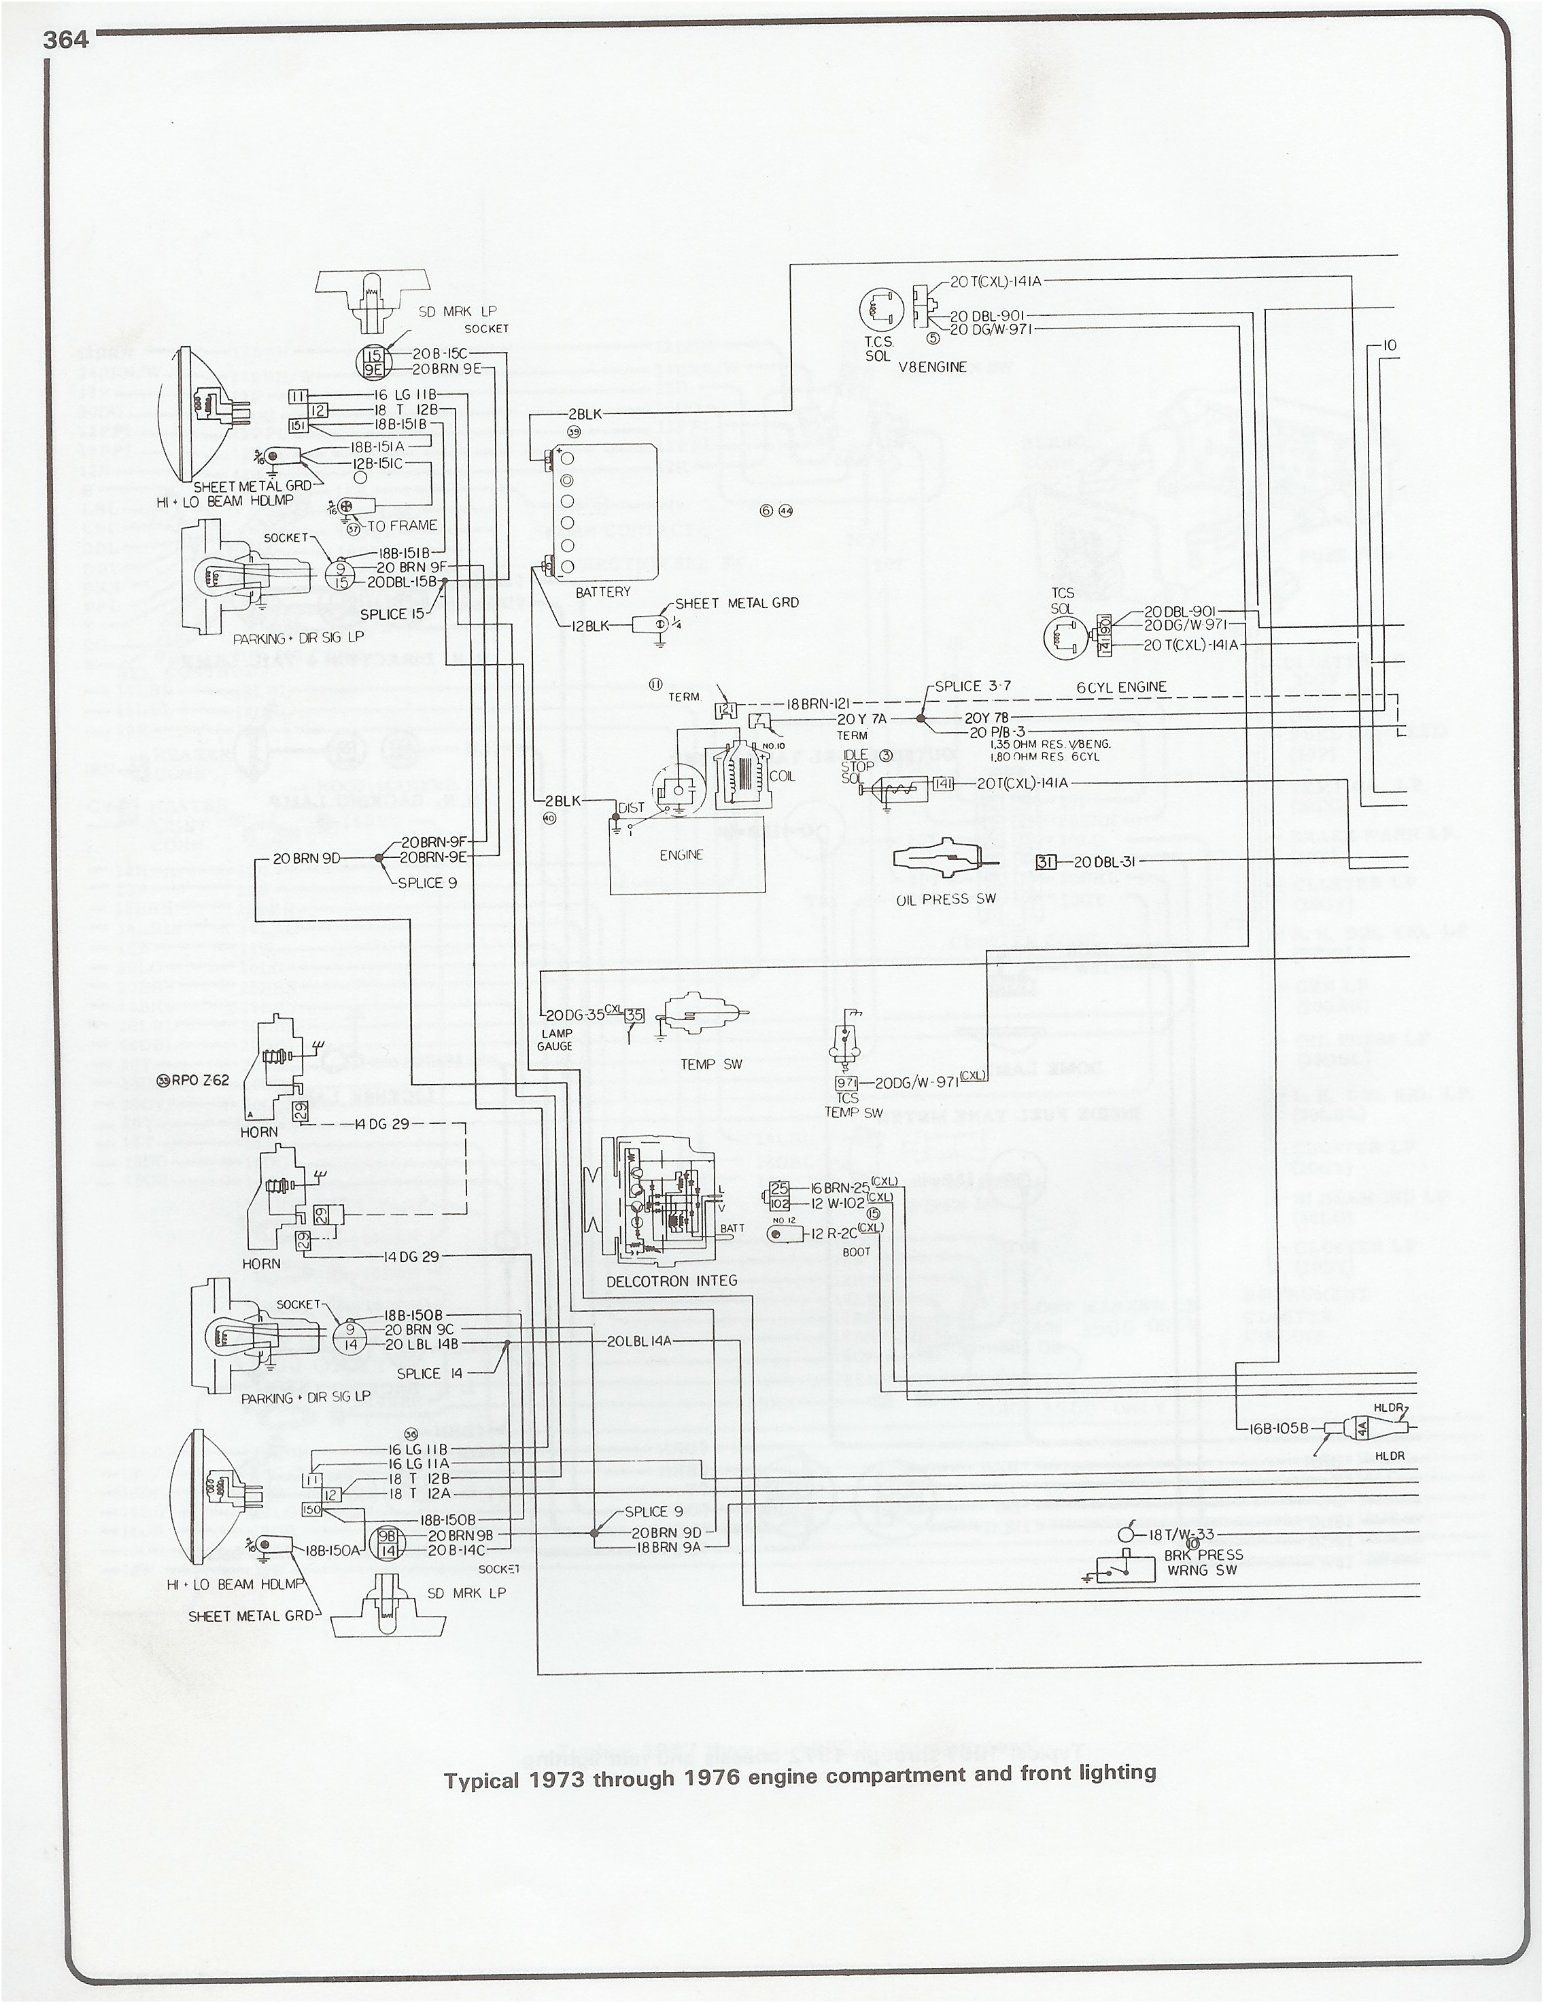 small resolution of wiring diagram 1973 1976 chevy pickup chevy wiring diagram 1974 chevy pickup wiring